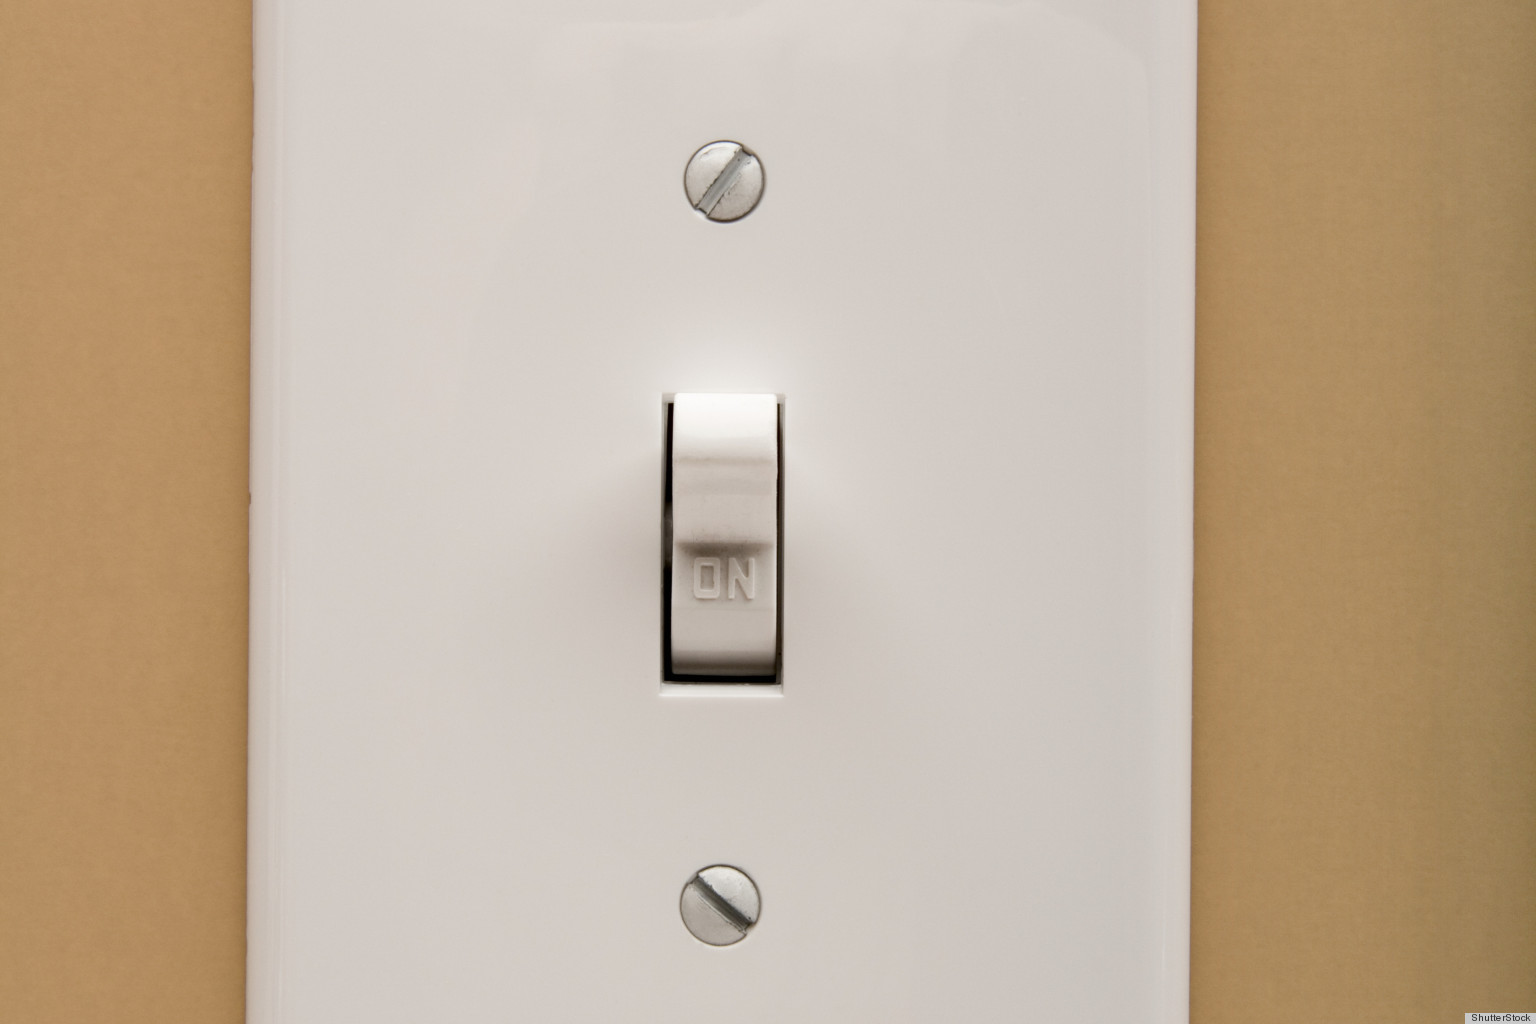 How To Clean A Light Switch, The Dirtiest Spot In Your Home | HuffPost